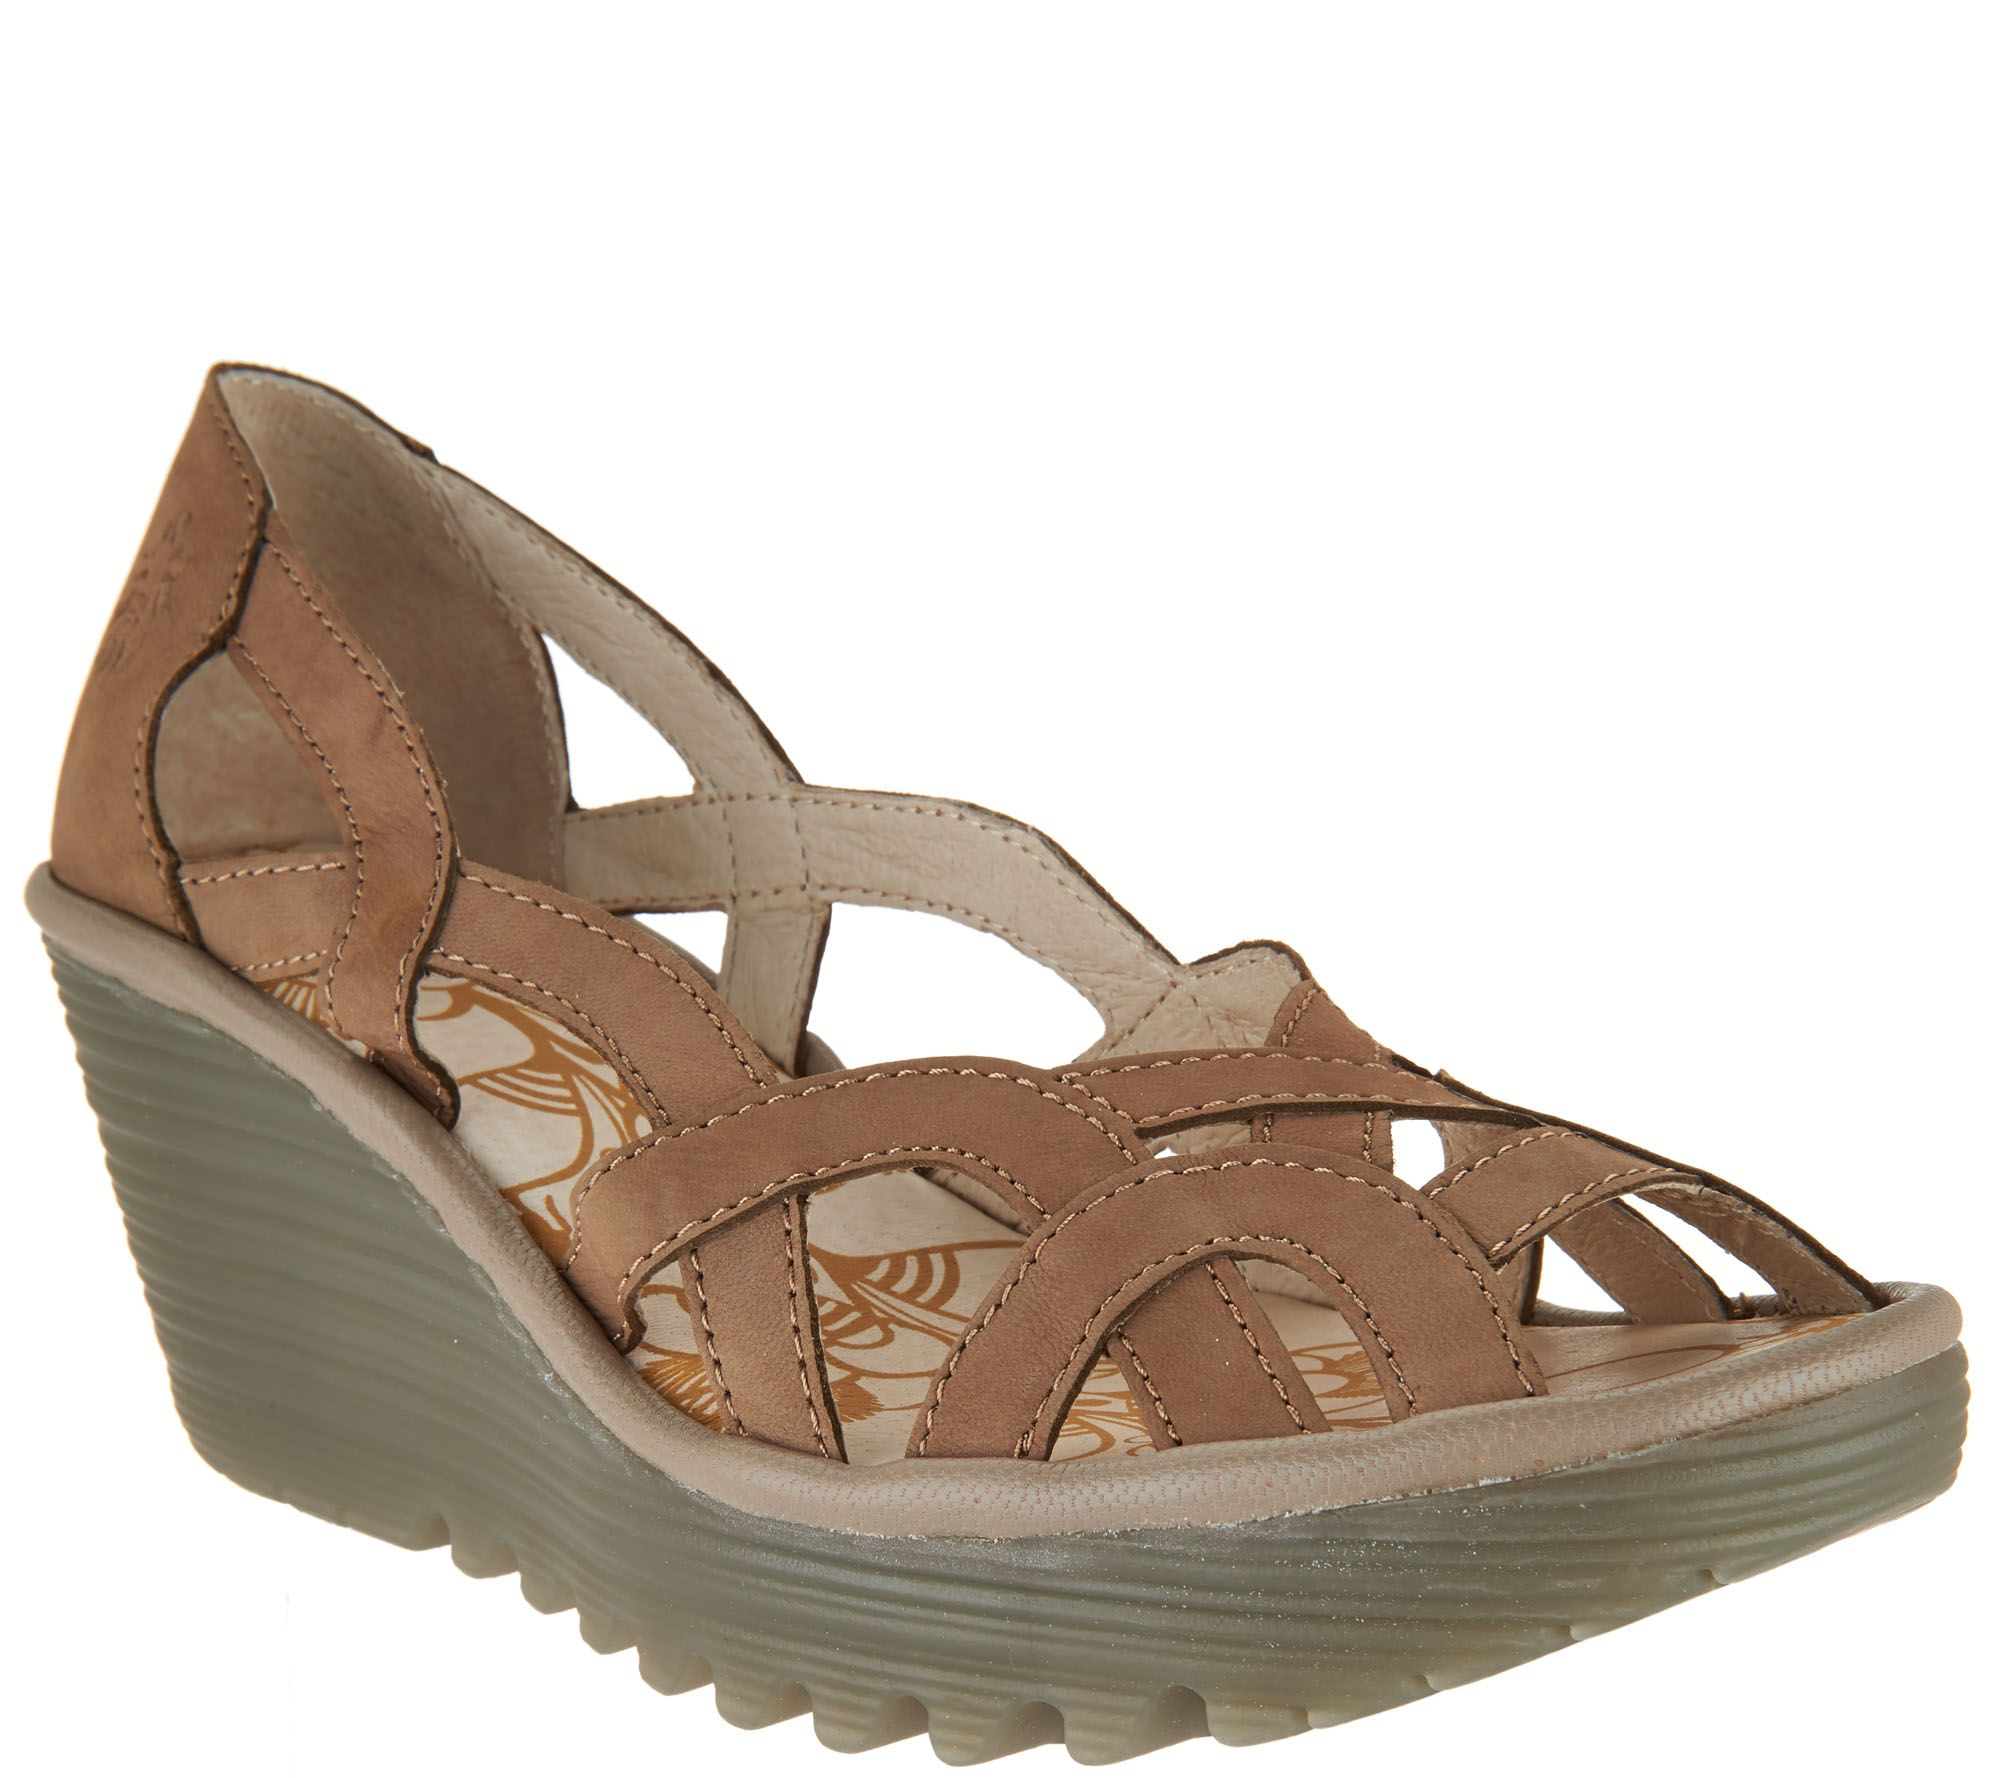 c615f248f3586 FLY London Leather Slip-on Wedge Sandals - Yadi - Page 1 — QVC.com